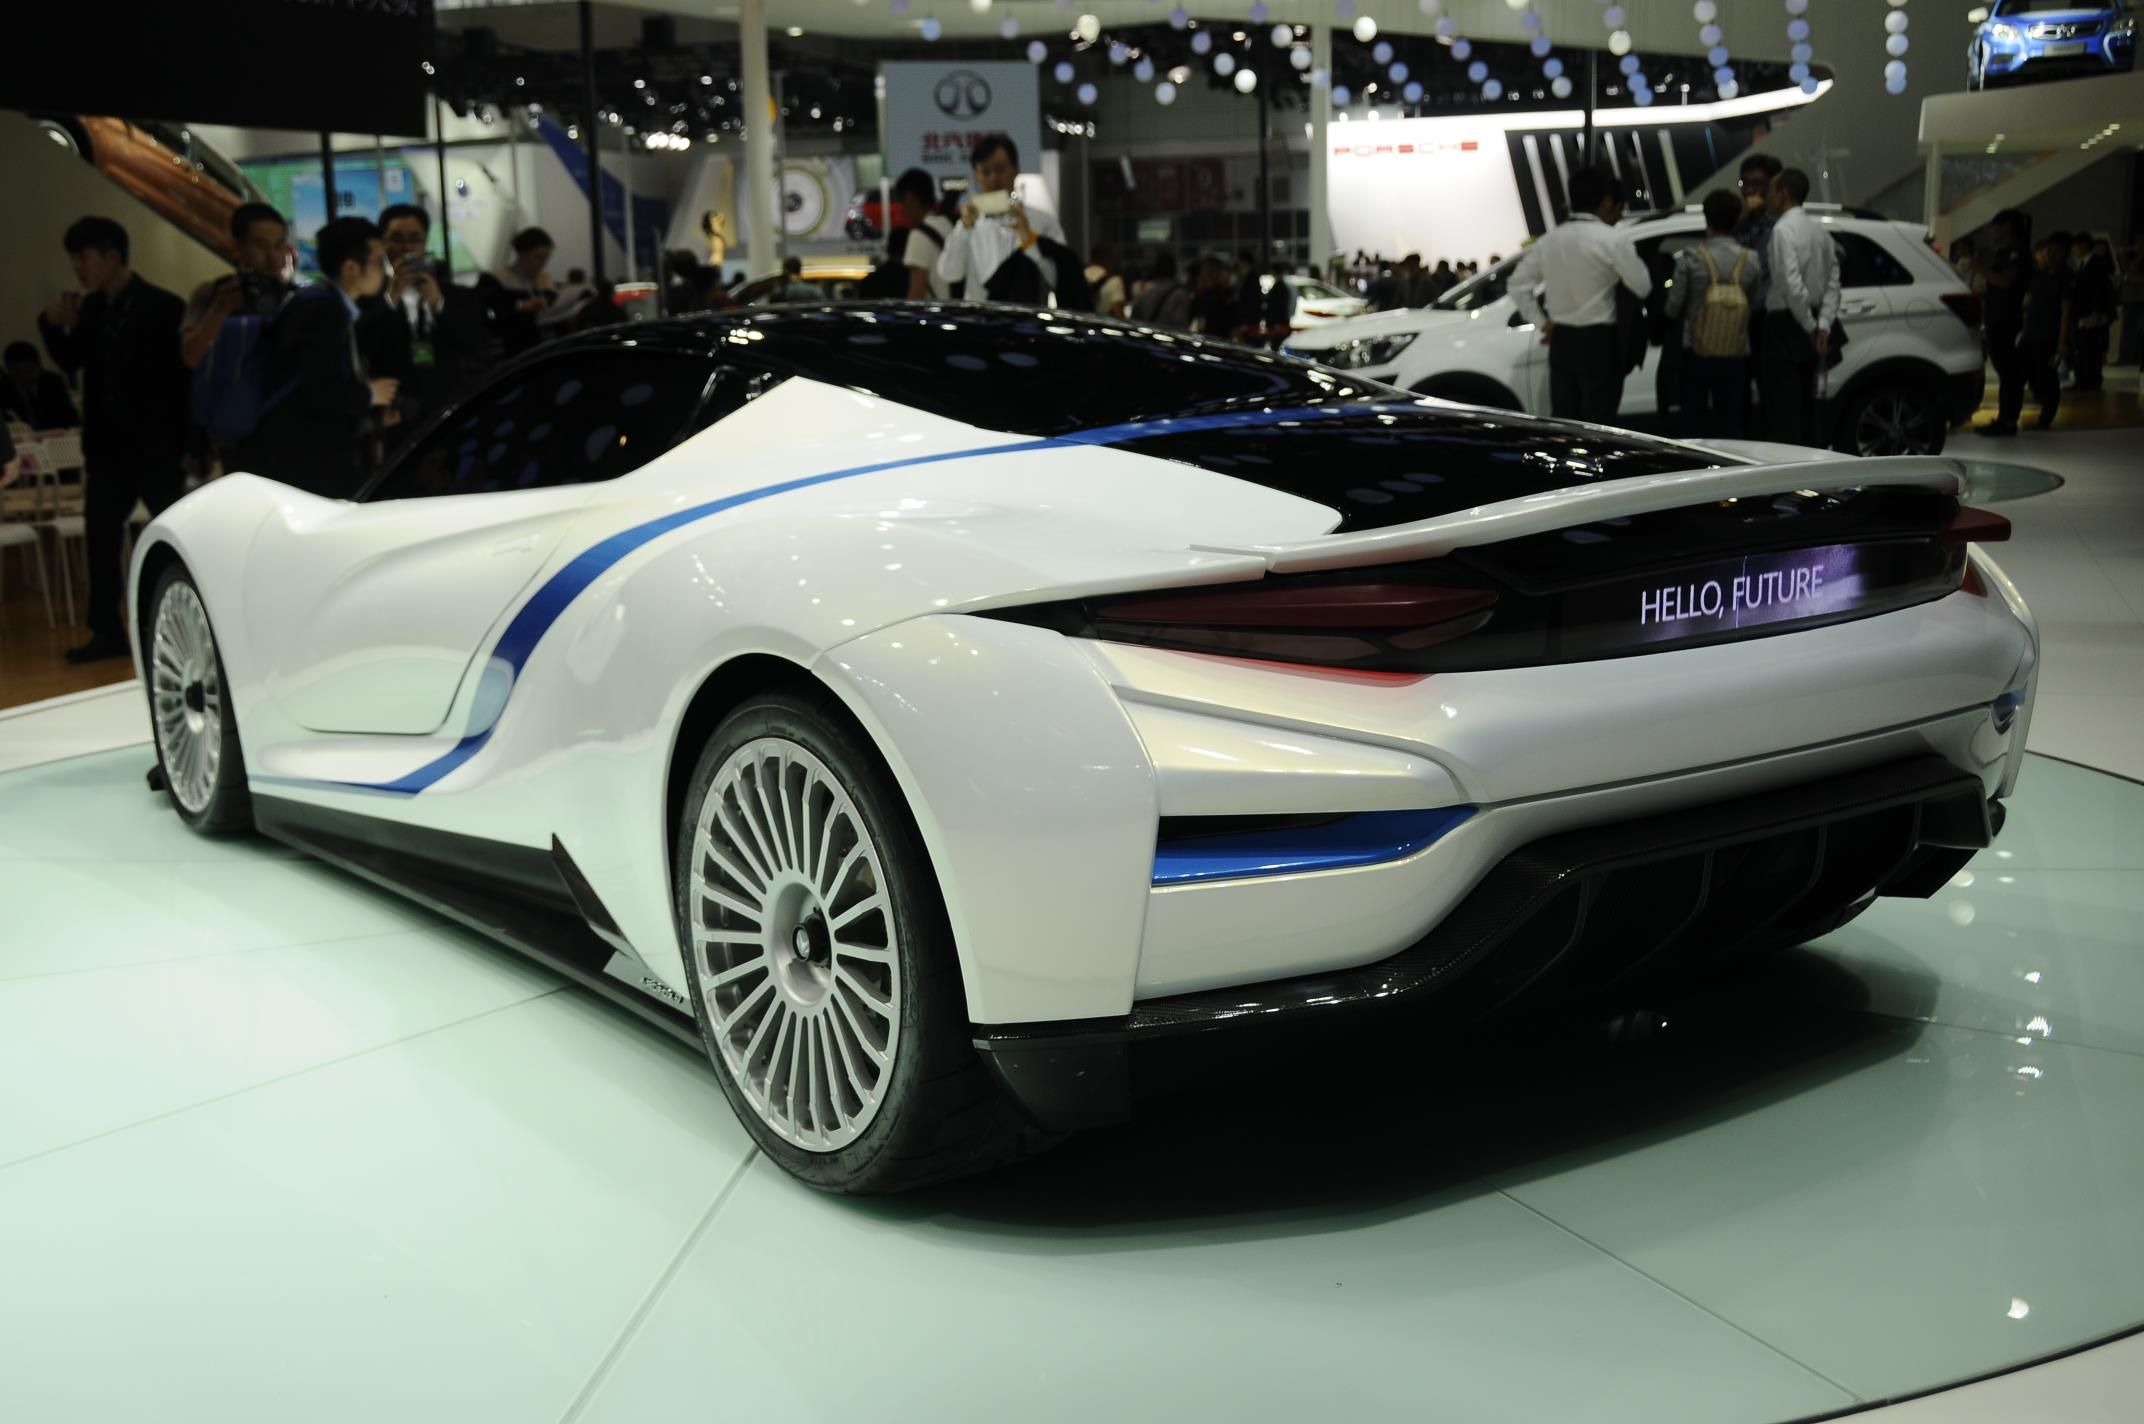 Top 10 Concept Cars At Beijing Auto Show 2016 Gtspirit Sports Car Super Cars Sports Cars Bugatti